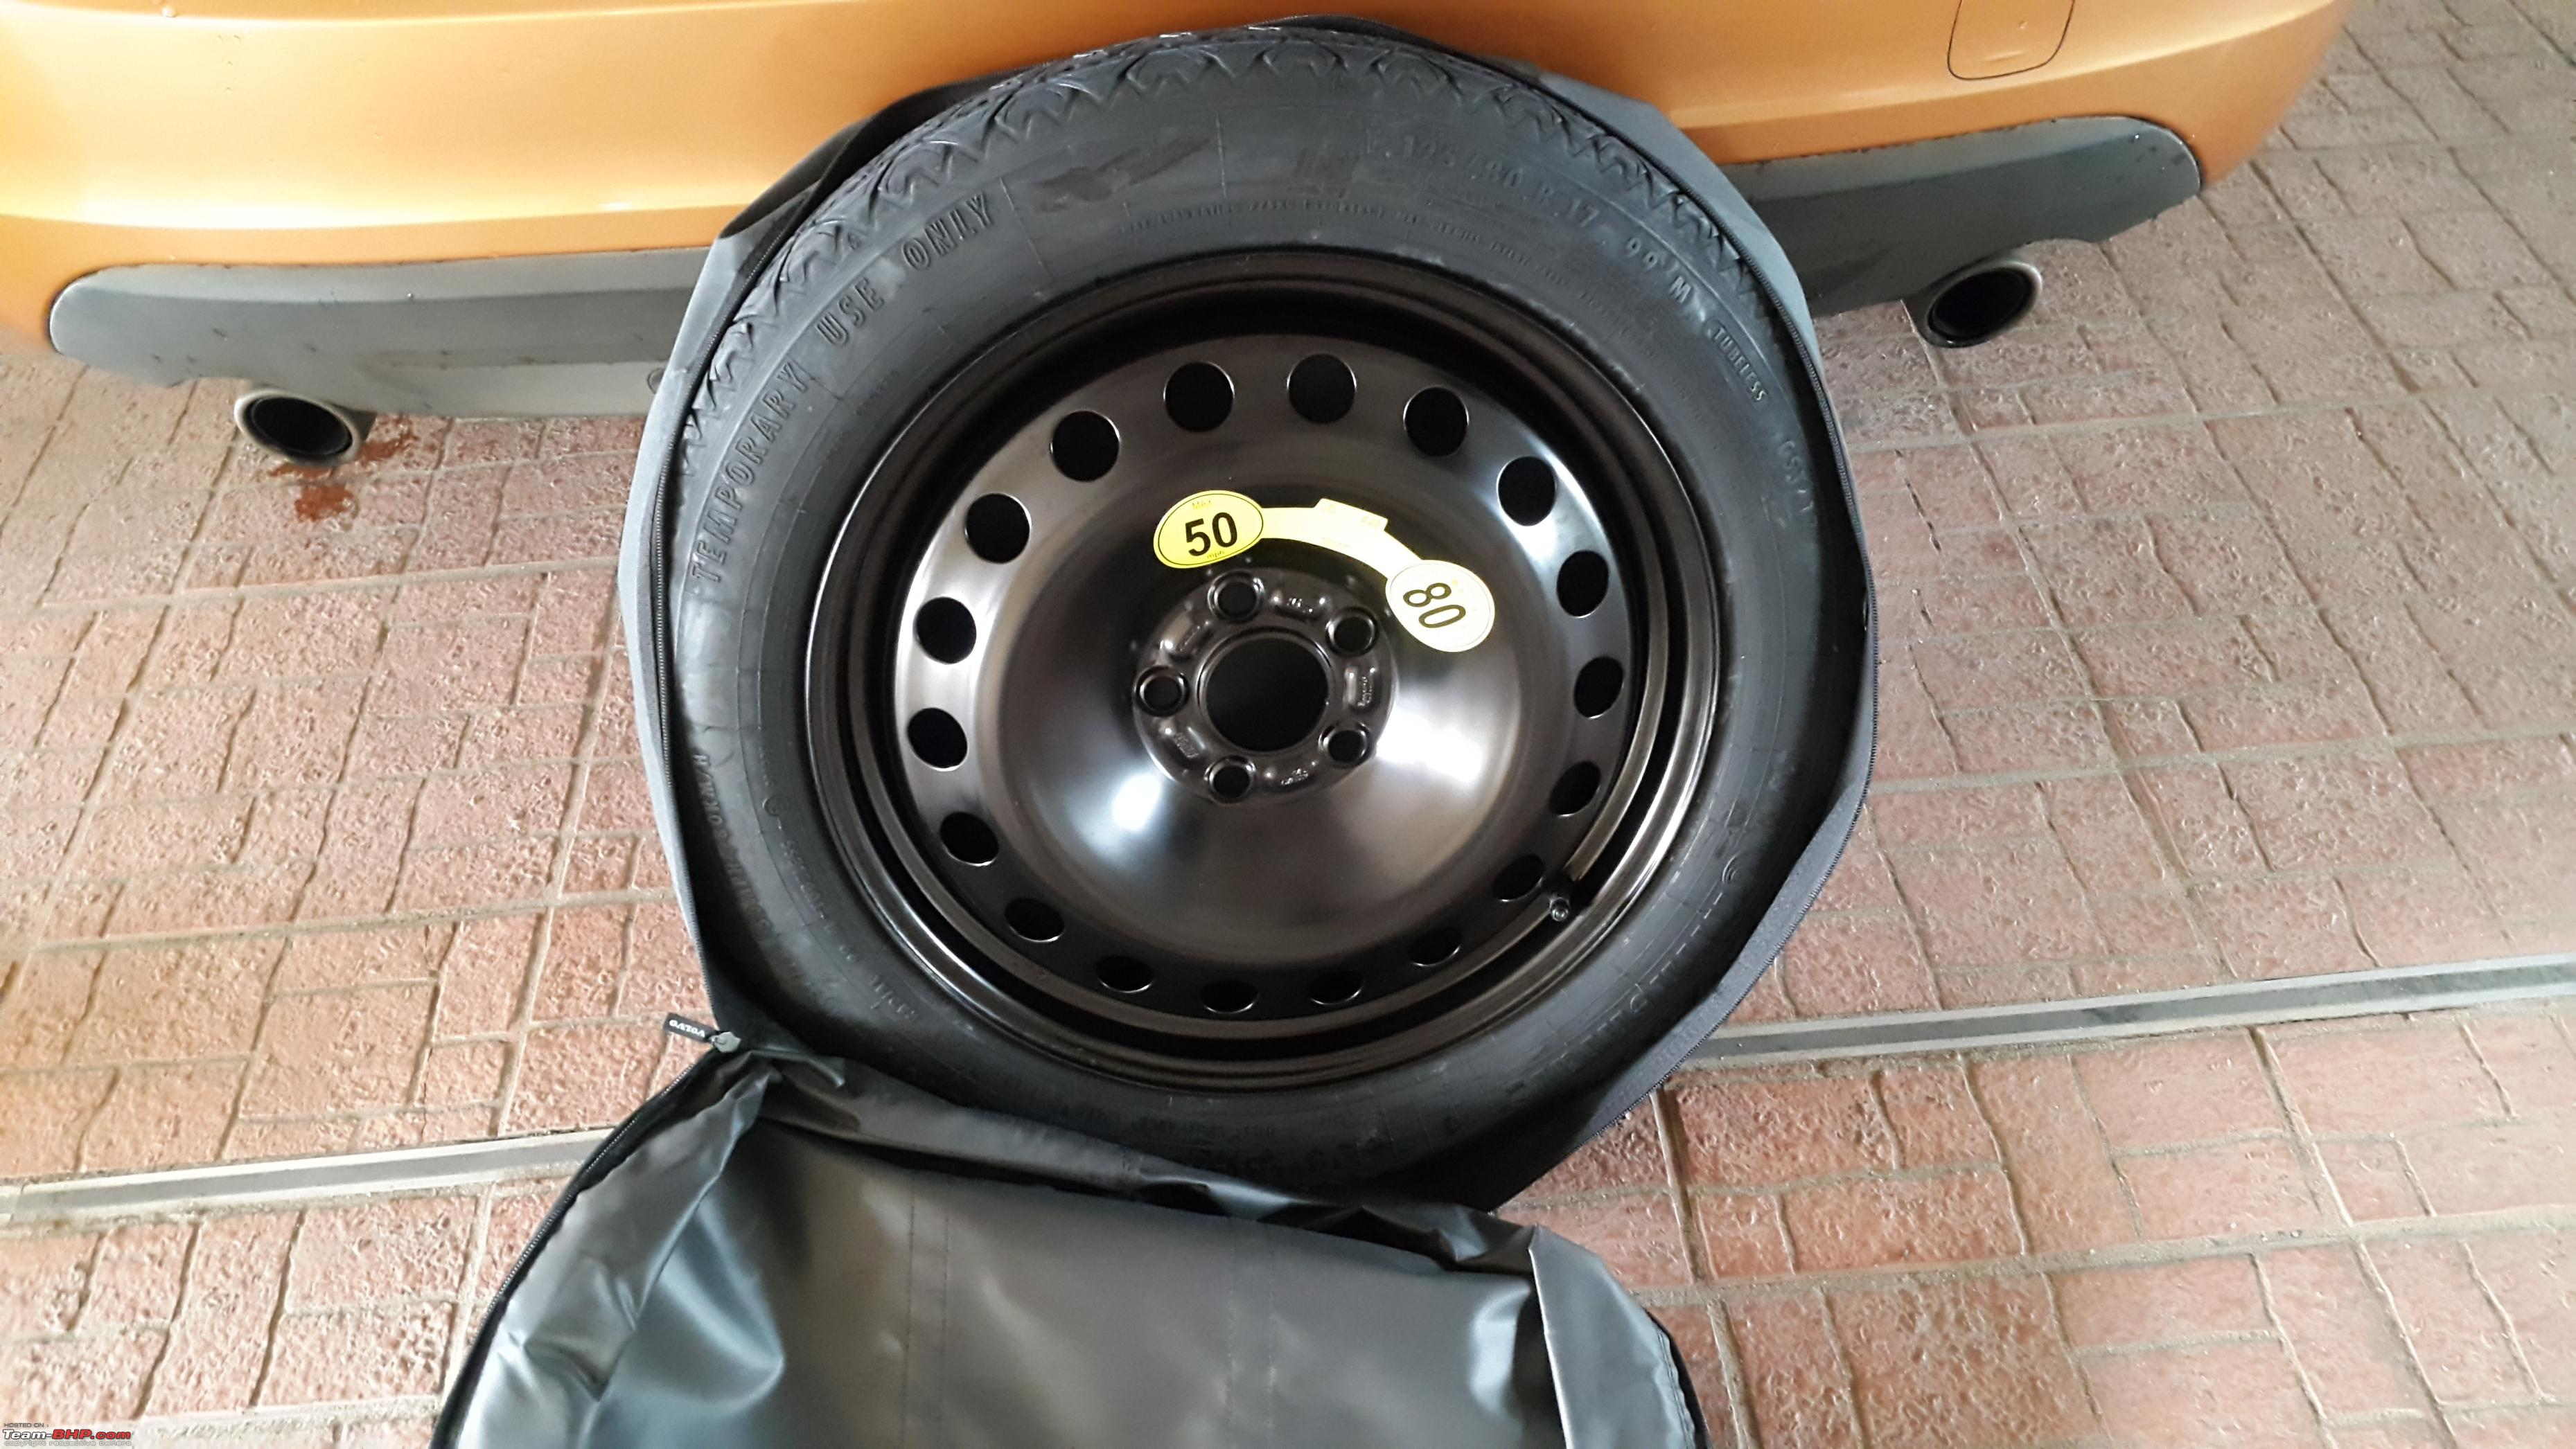 Volvo S60: Taking out the spare wheel